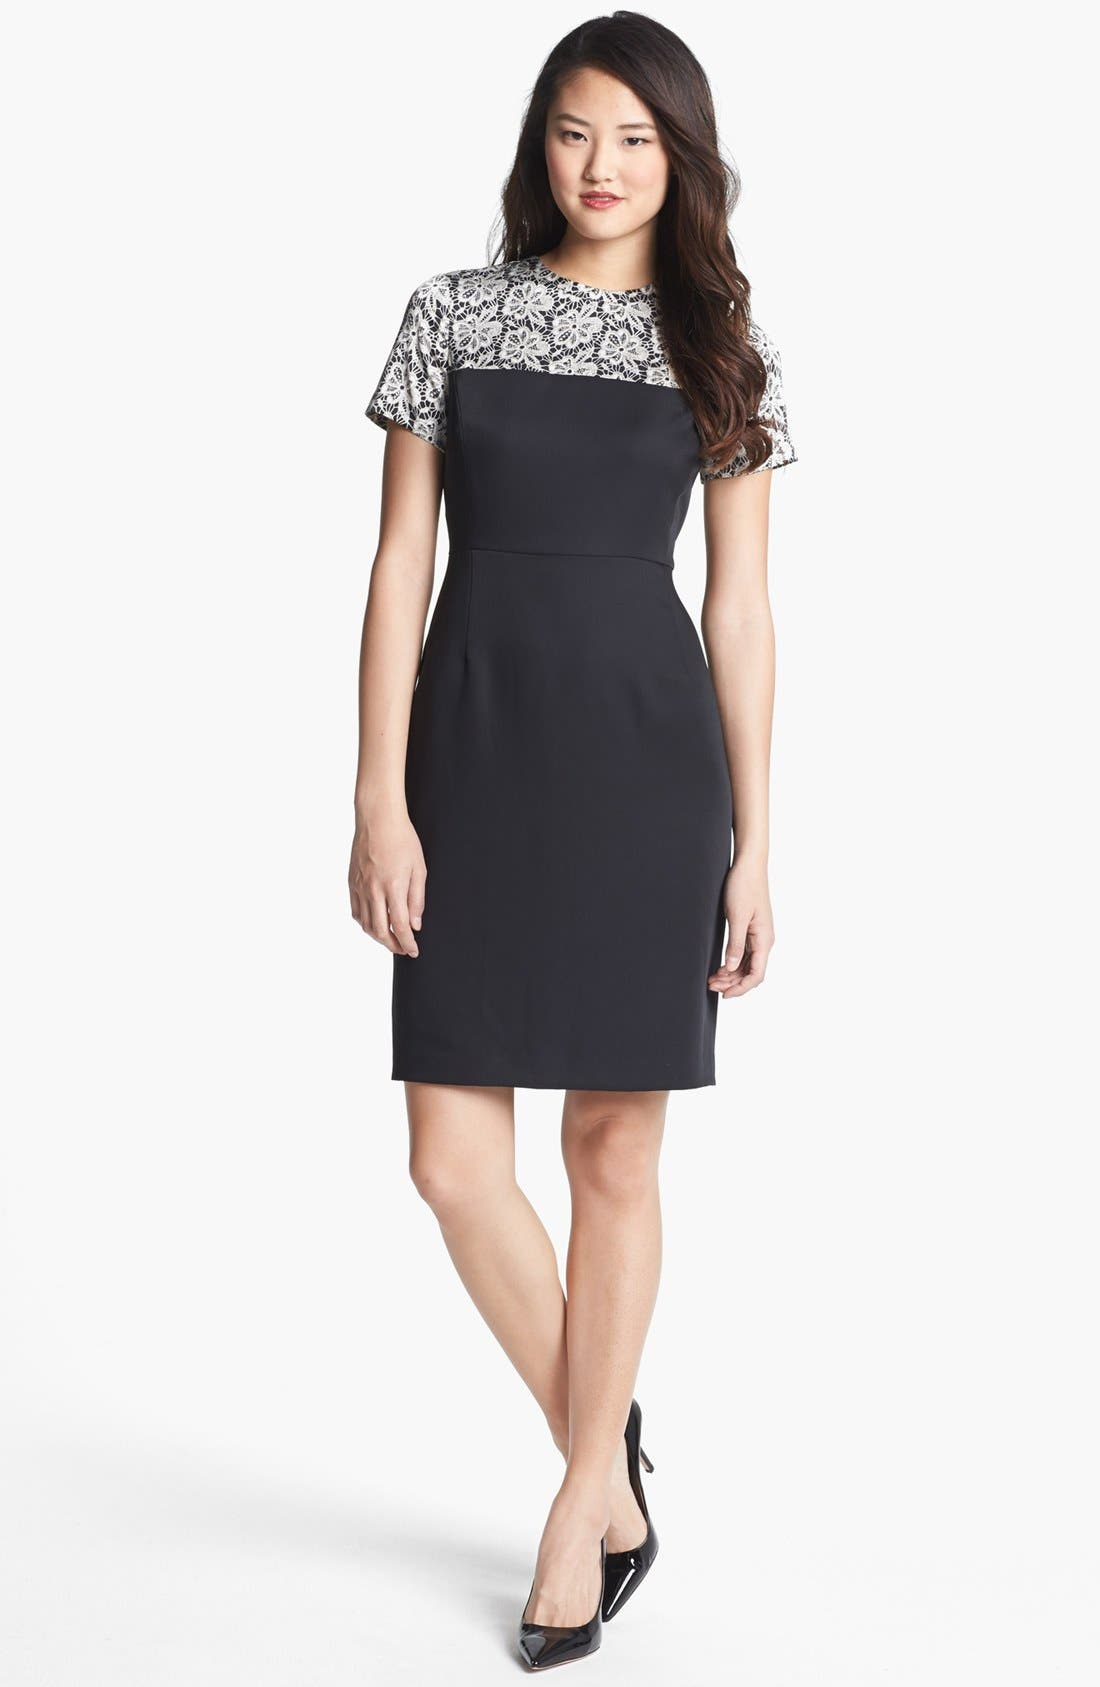 Alternate Image 1 Selected - Vince Camuto Lace Print Crepe Dress